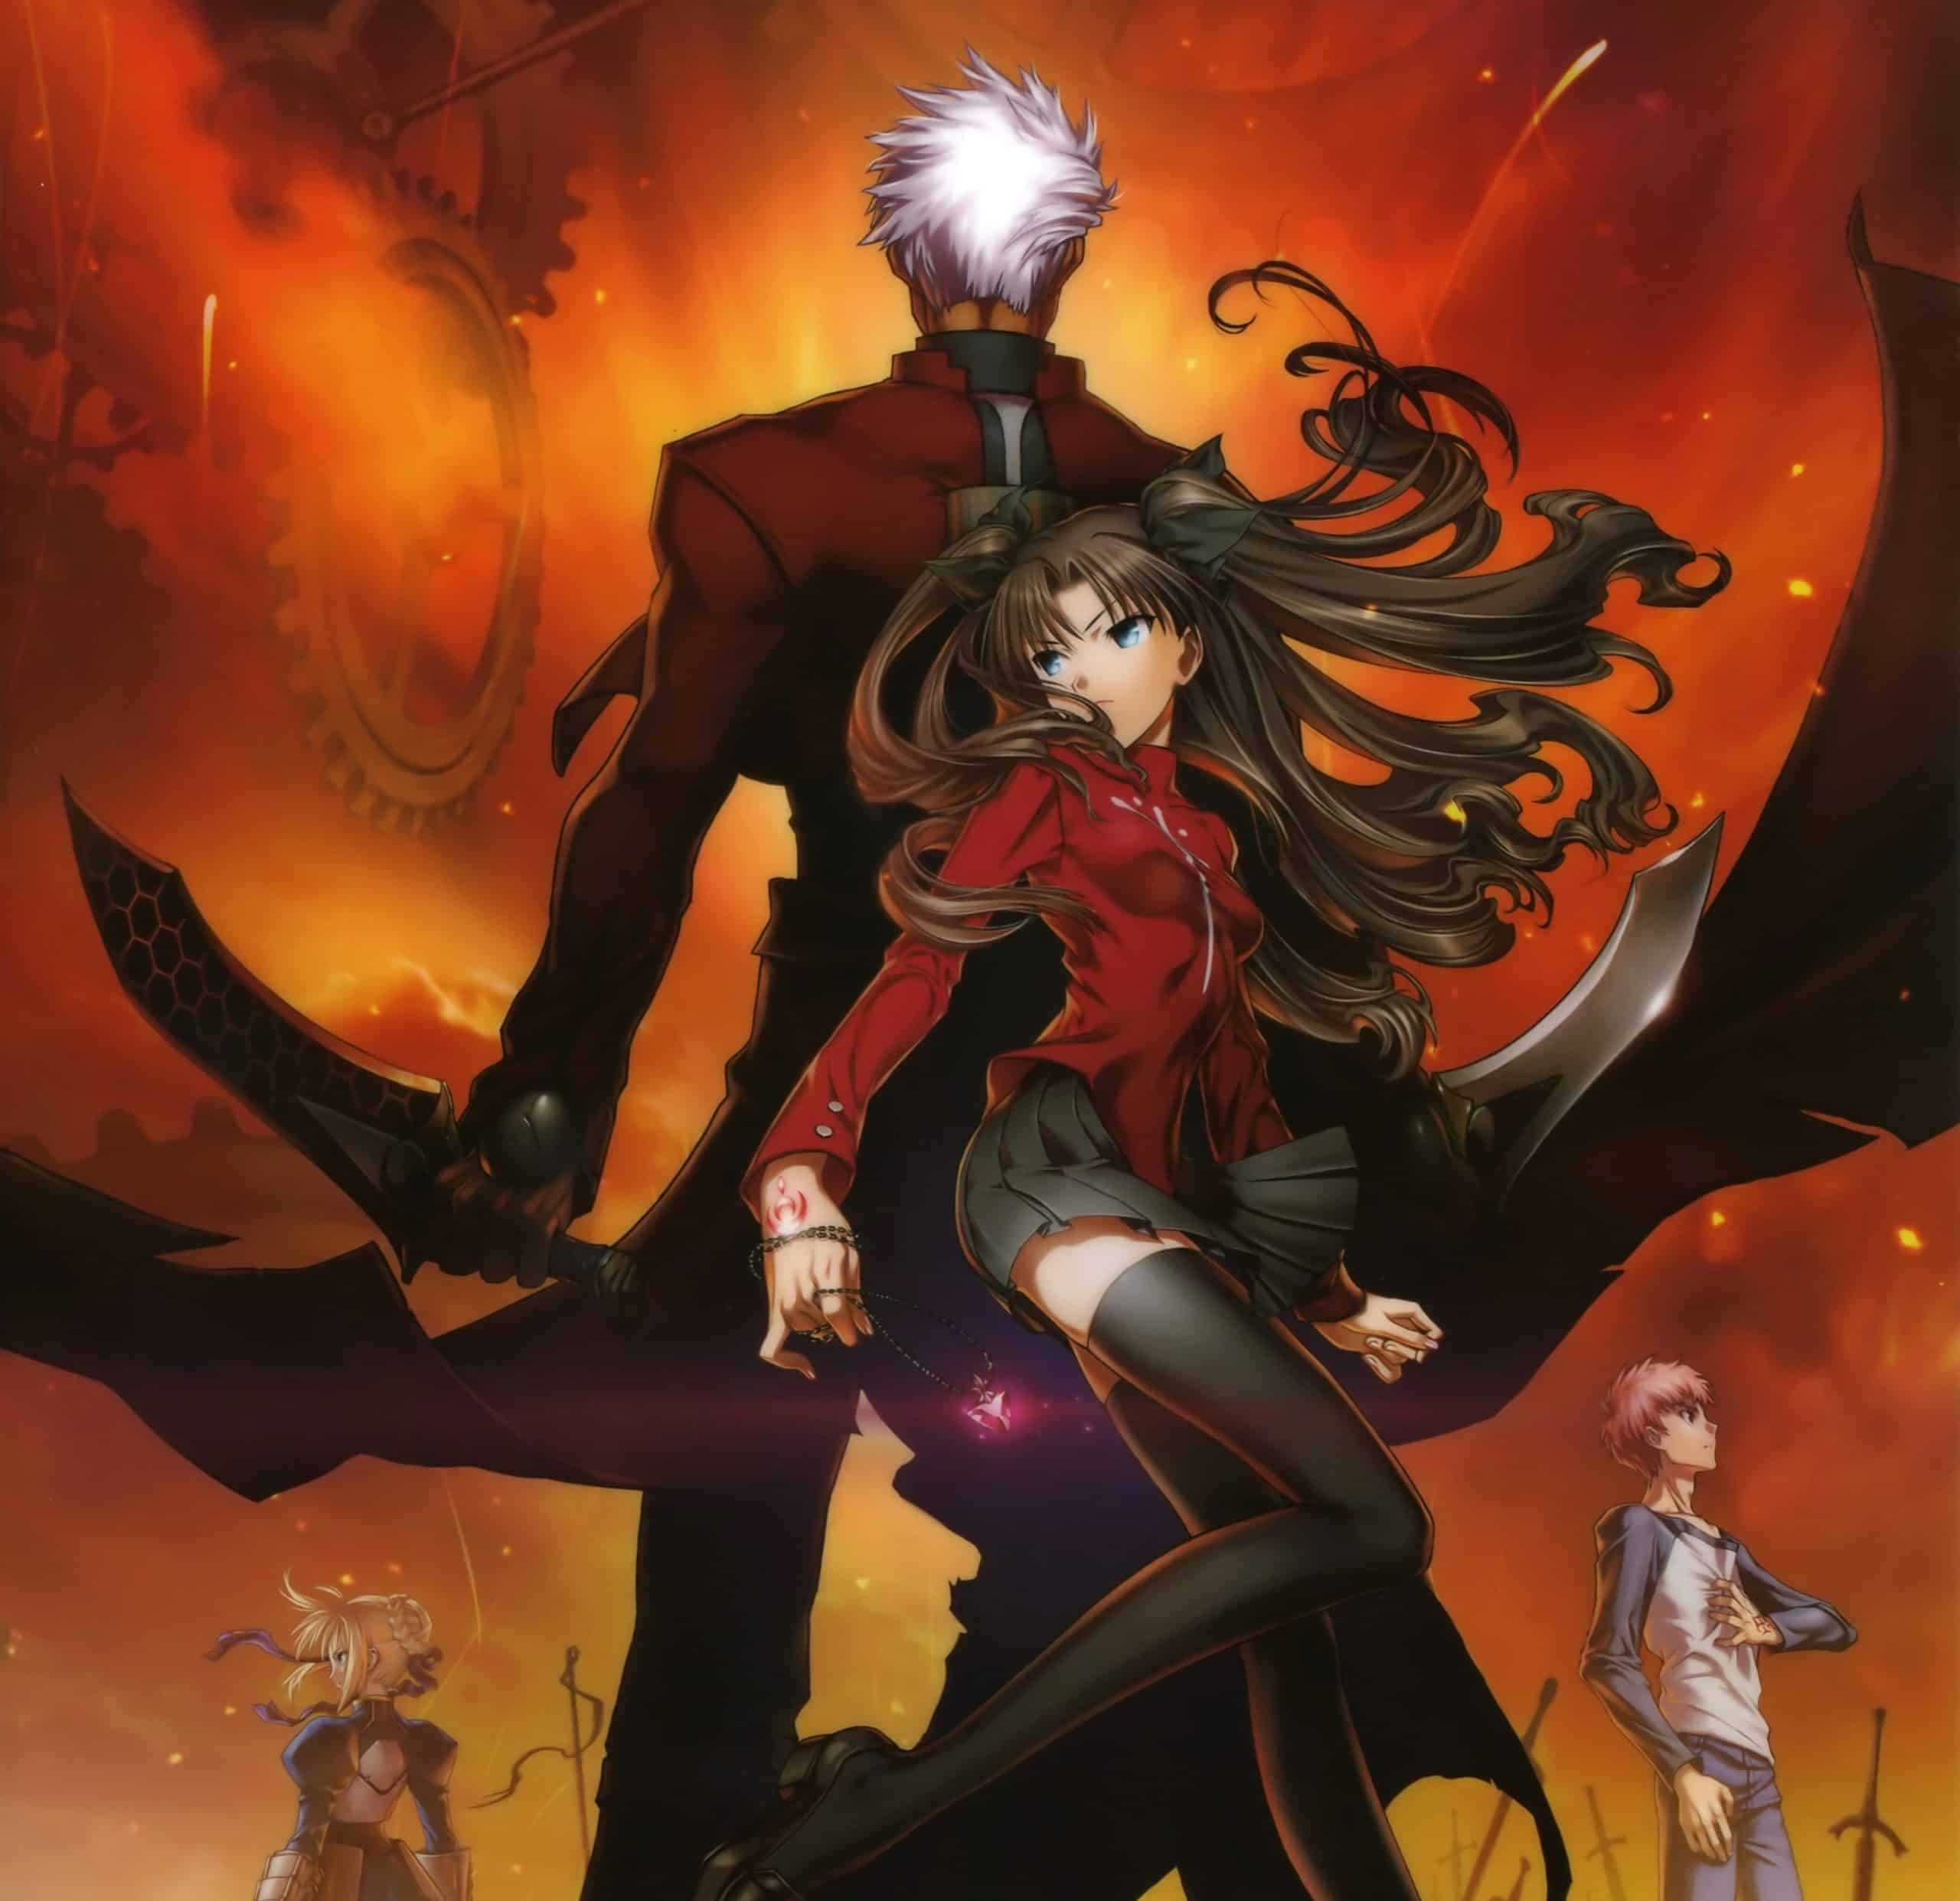 Assistir Fate/stay night Movie Unlimited Blade Works Todos os Episódios Online Completo